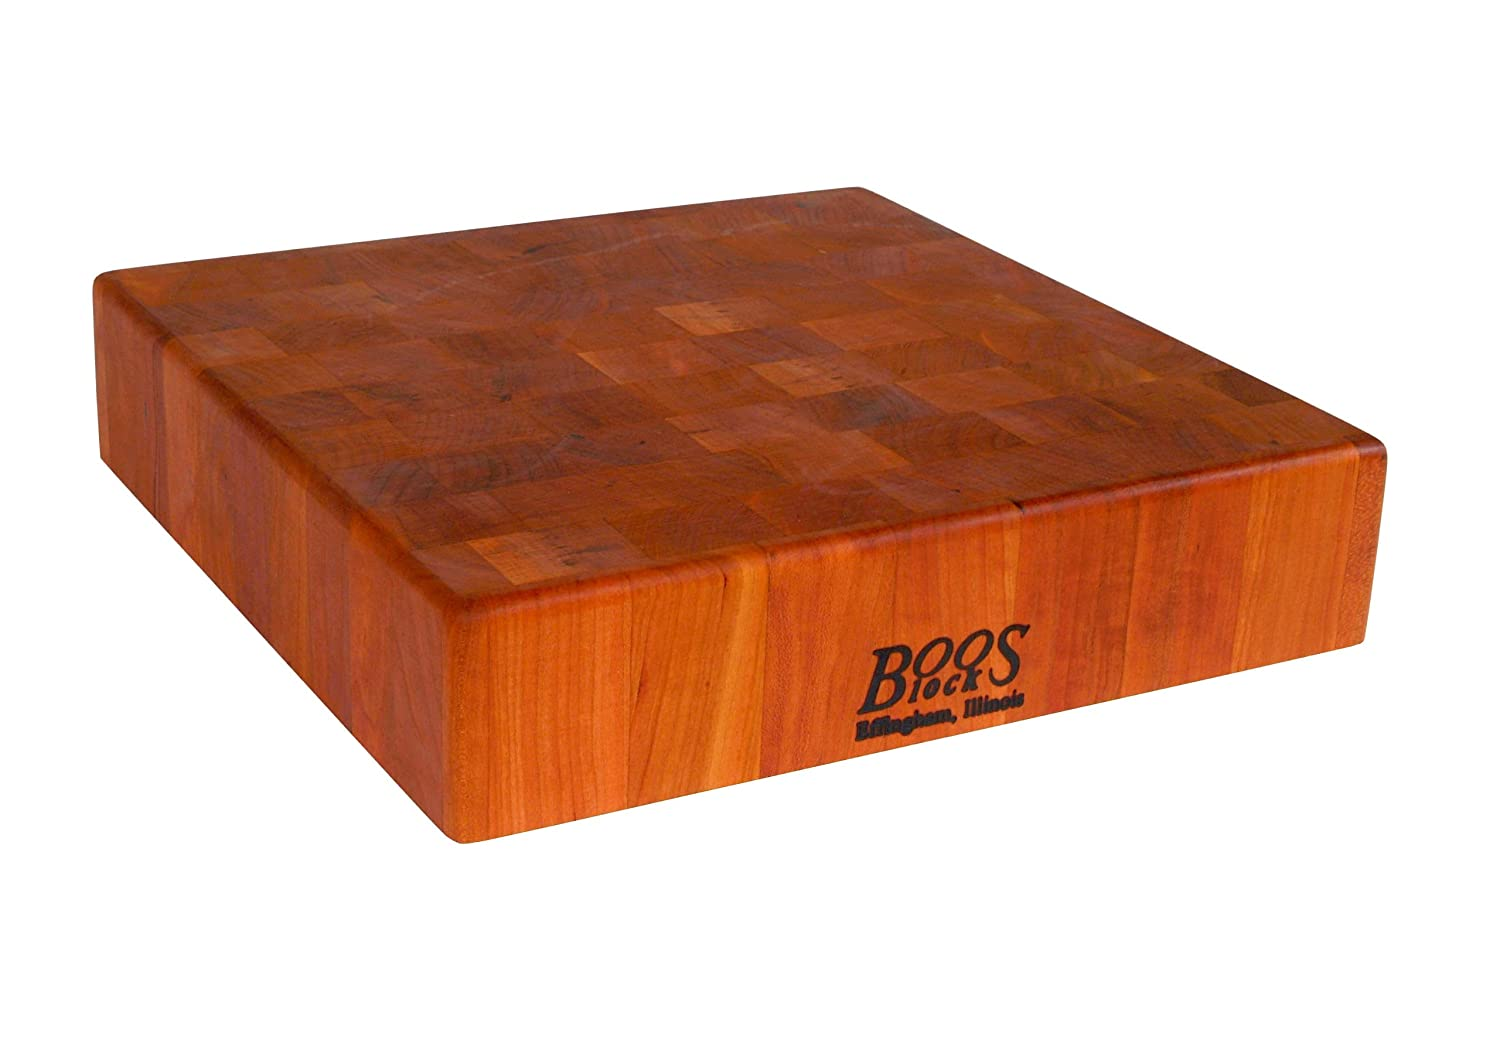 Where to buy john boos cutting boards i